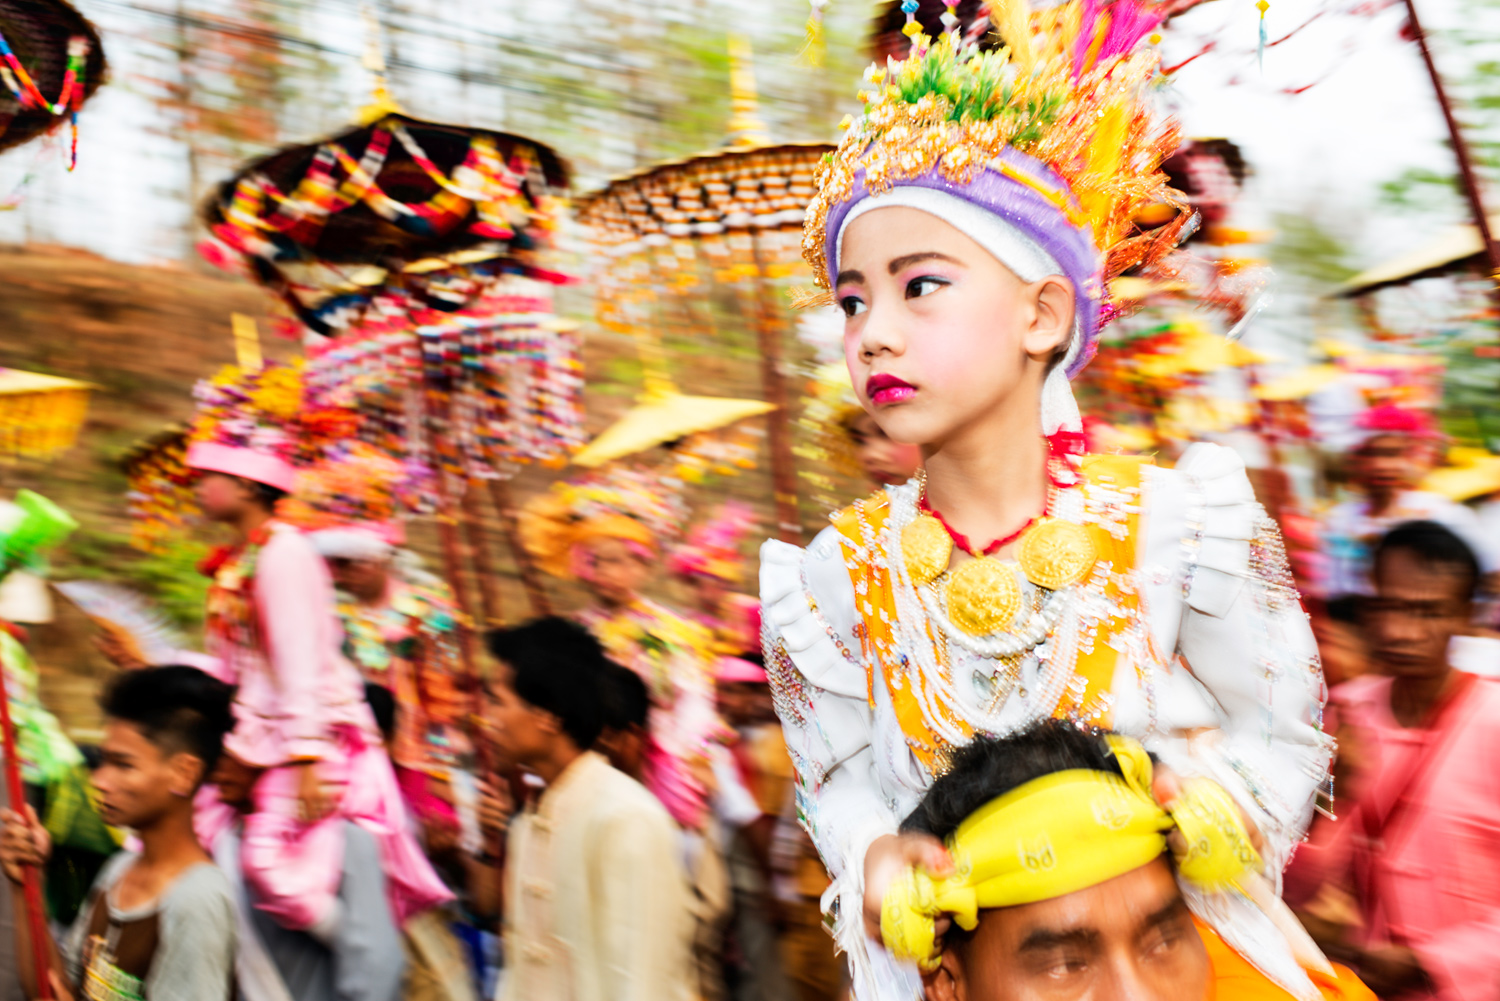 Royalty Free Editorial Stock Photography - What is it? Poi Sang Long Festival in Thailand